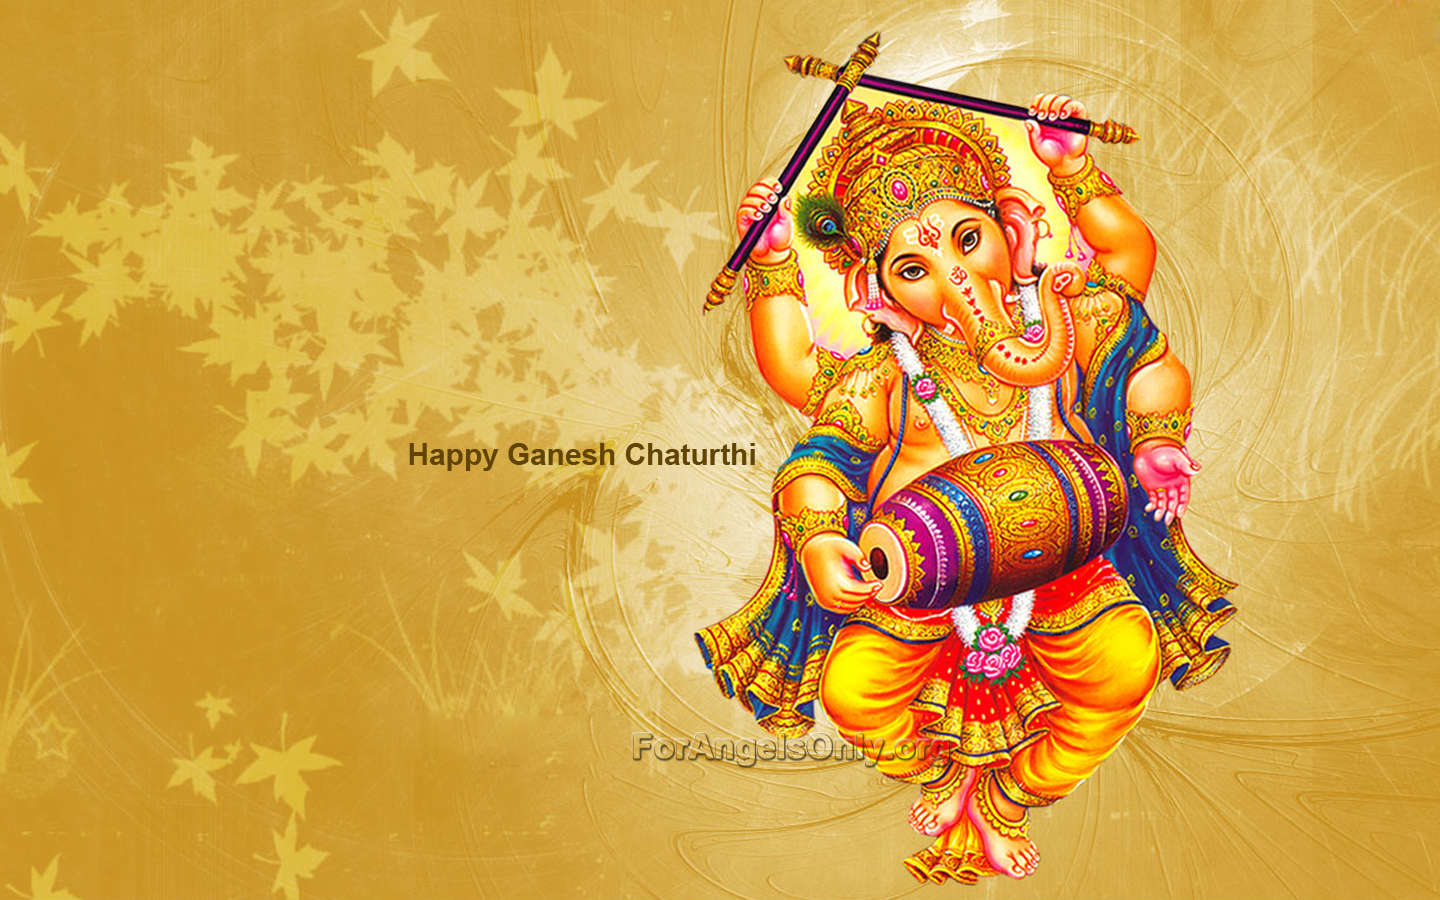 ganesh chaturthi essay in english for kids Essay on ganesh chaturthi digital india essay for students, kids and children child labour essay in english.